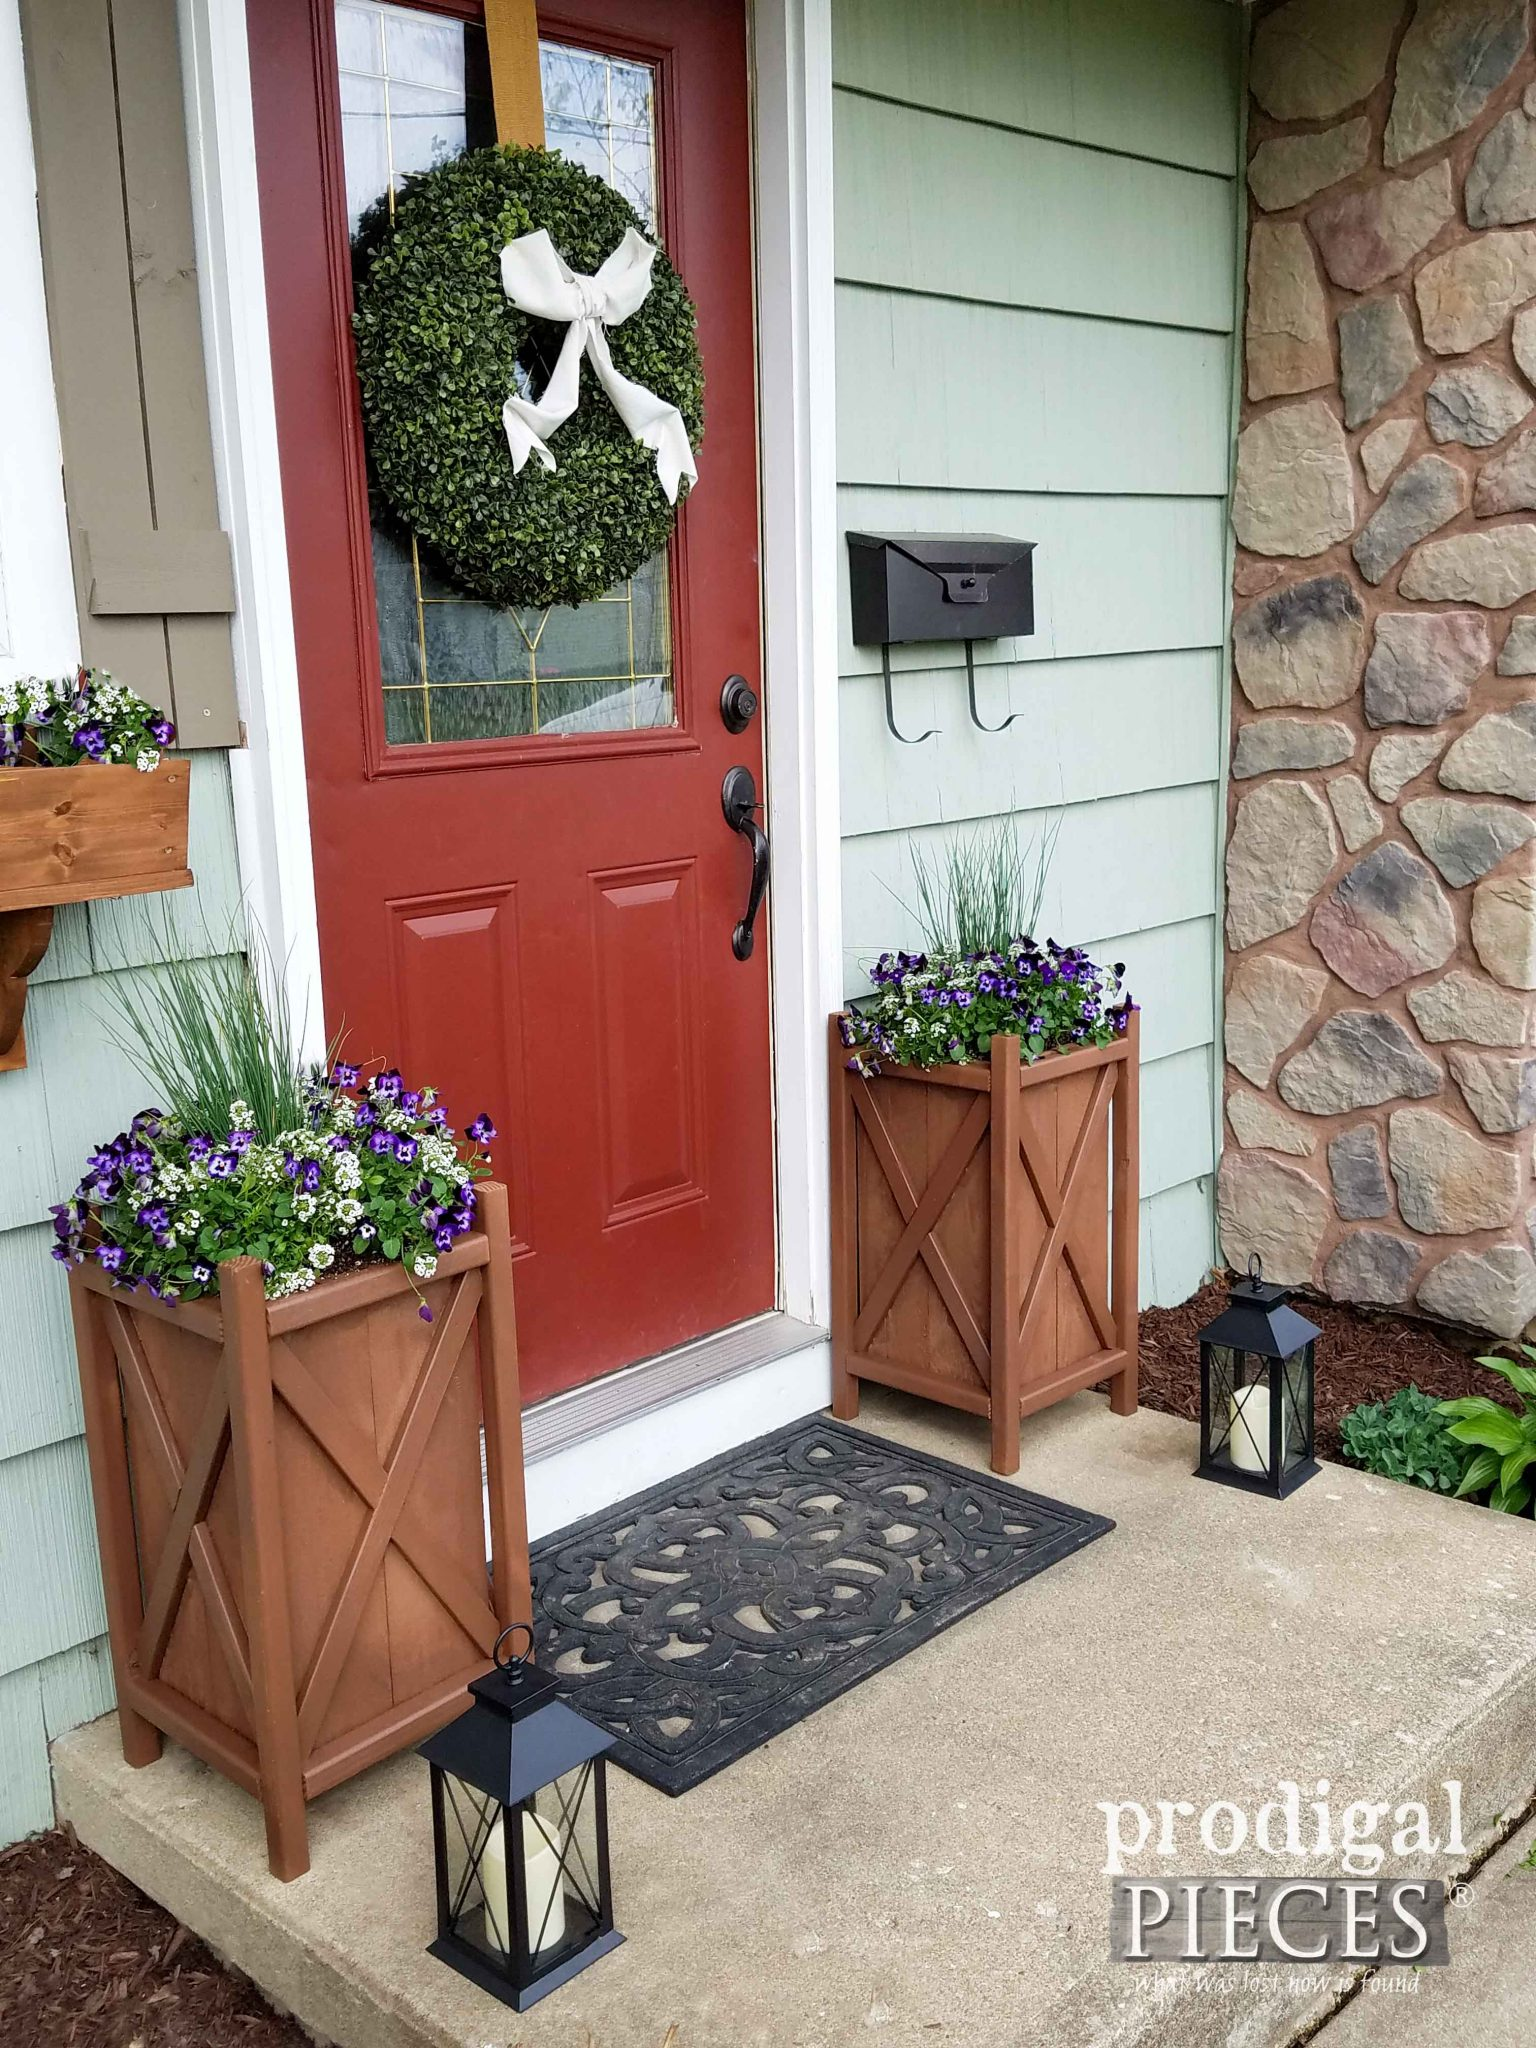 Build these DIY Planters for added curb appeal. Tutorial by Prodigal Pieces | prodigalpieces.com